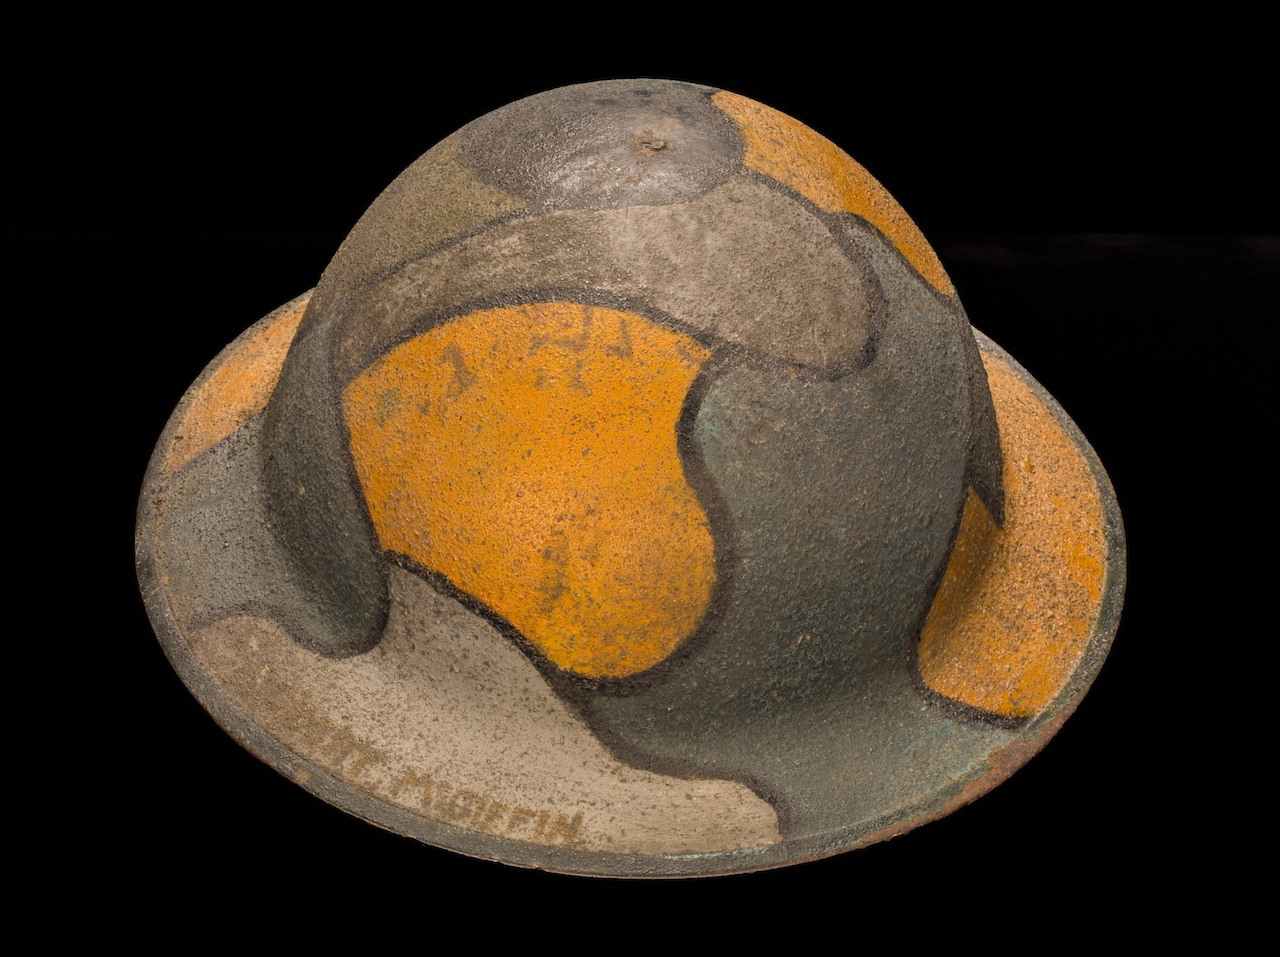 American Helmet Painted in Imitation of a German Camouflage Helmet. Ca. 1918. Robert McGiffin (American). Jane A. Kimball, Trench Art Collection